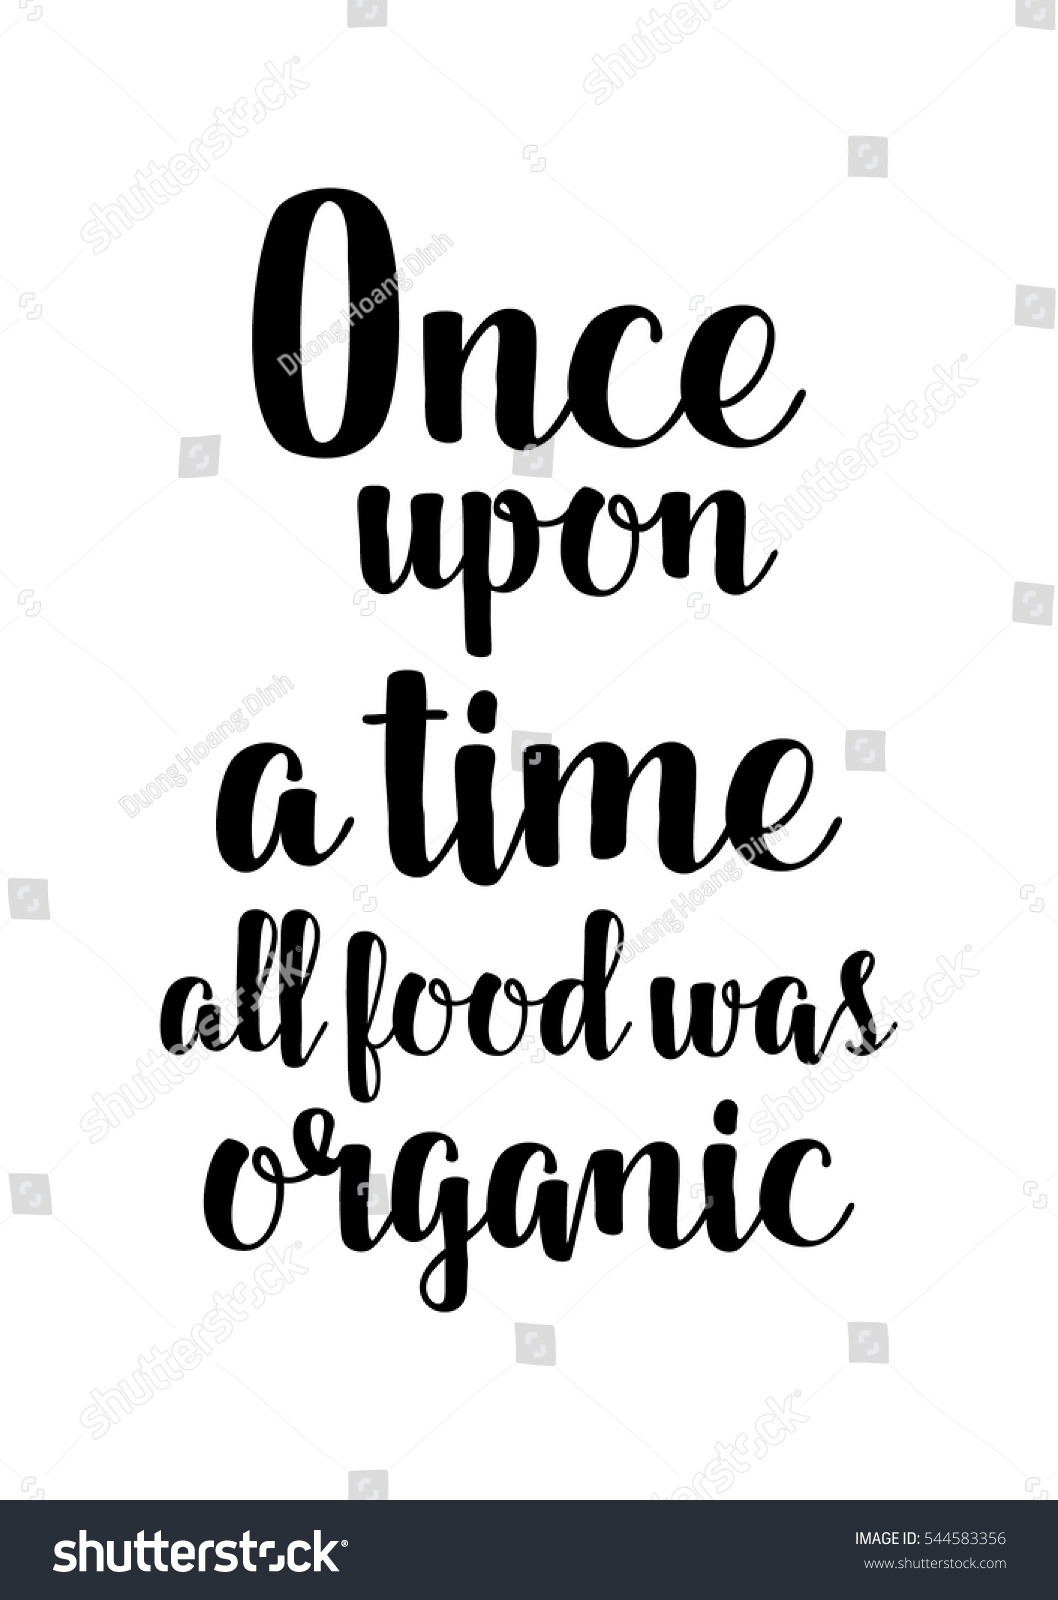 Once Upon A Time All Food Was Organic